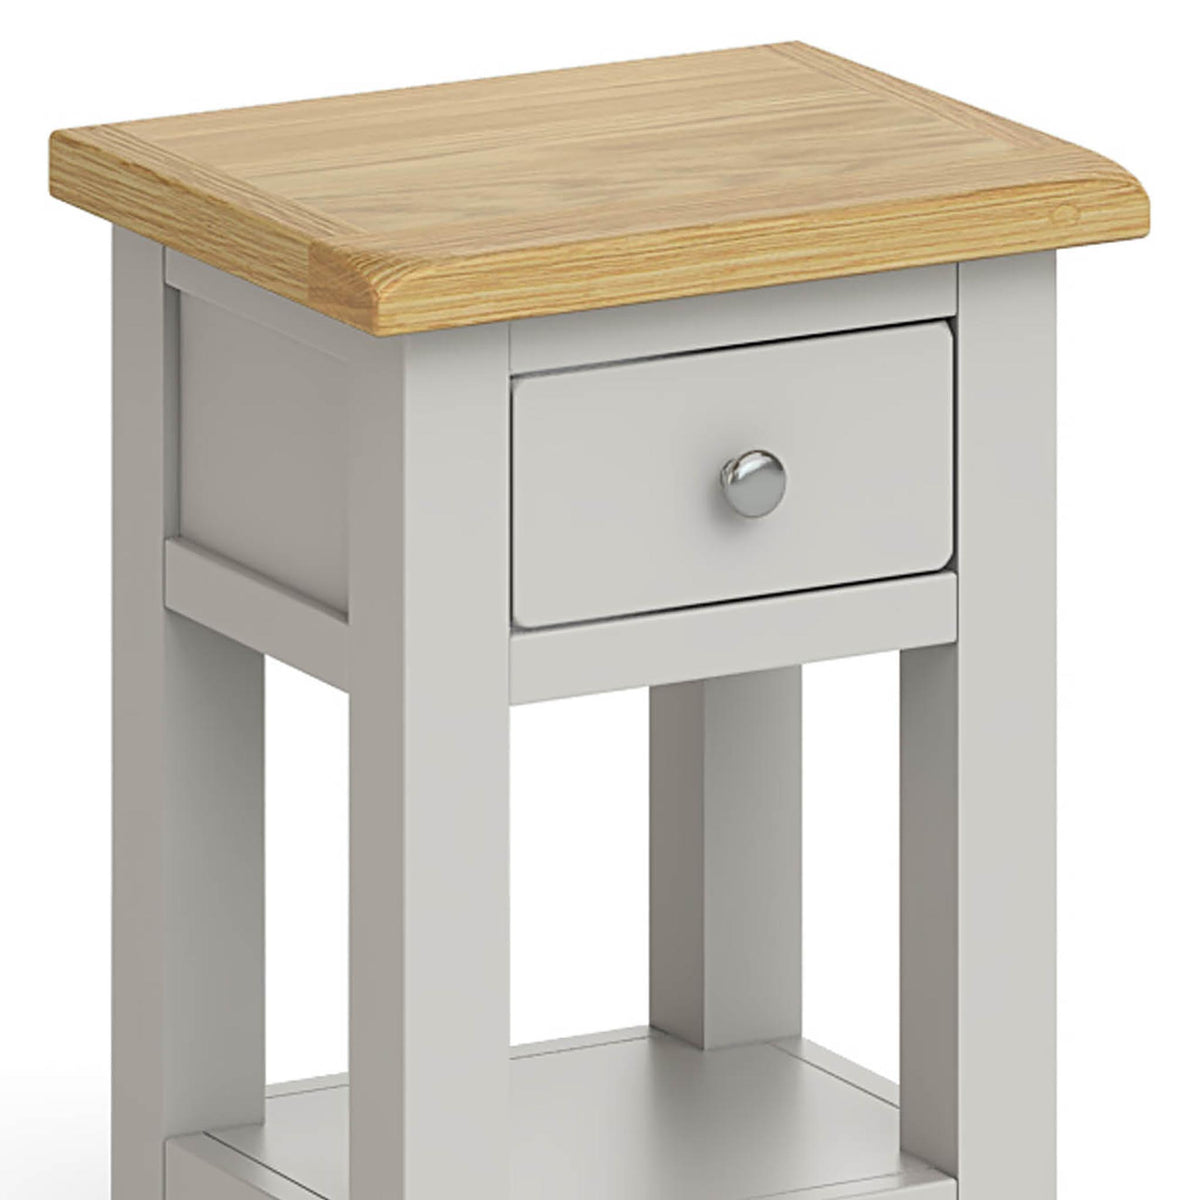 Lundy Grey Lamp Table - Close Up of Drawer and Top